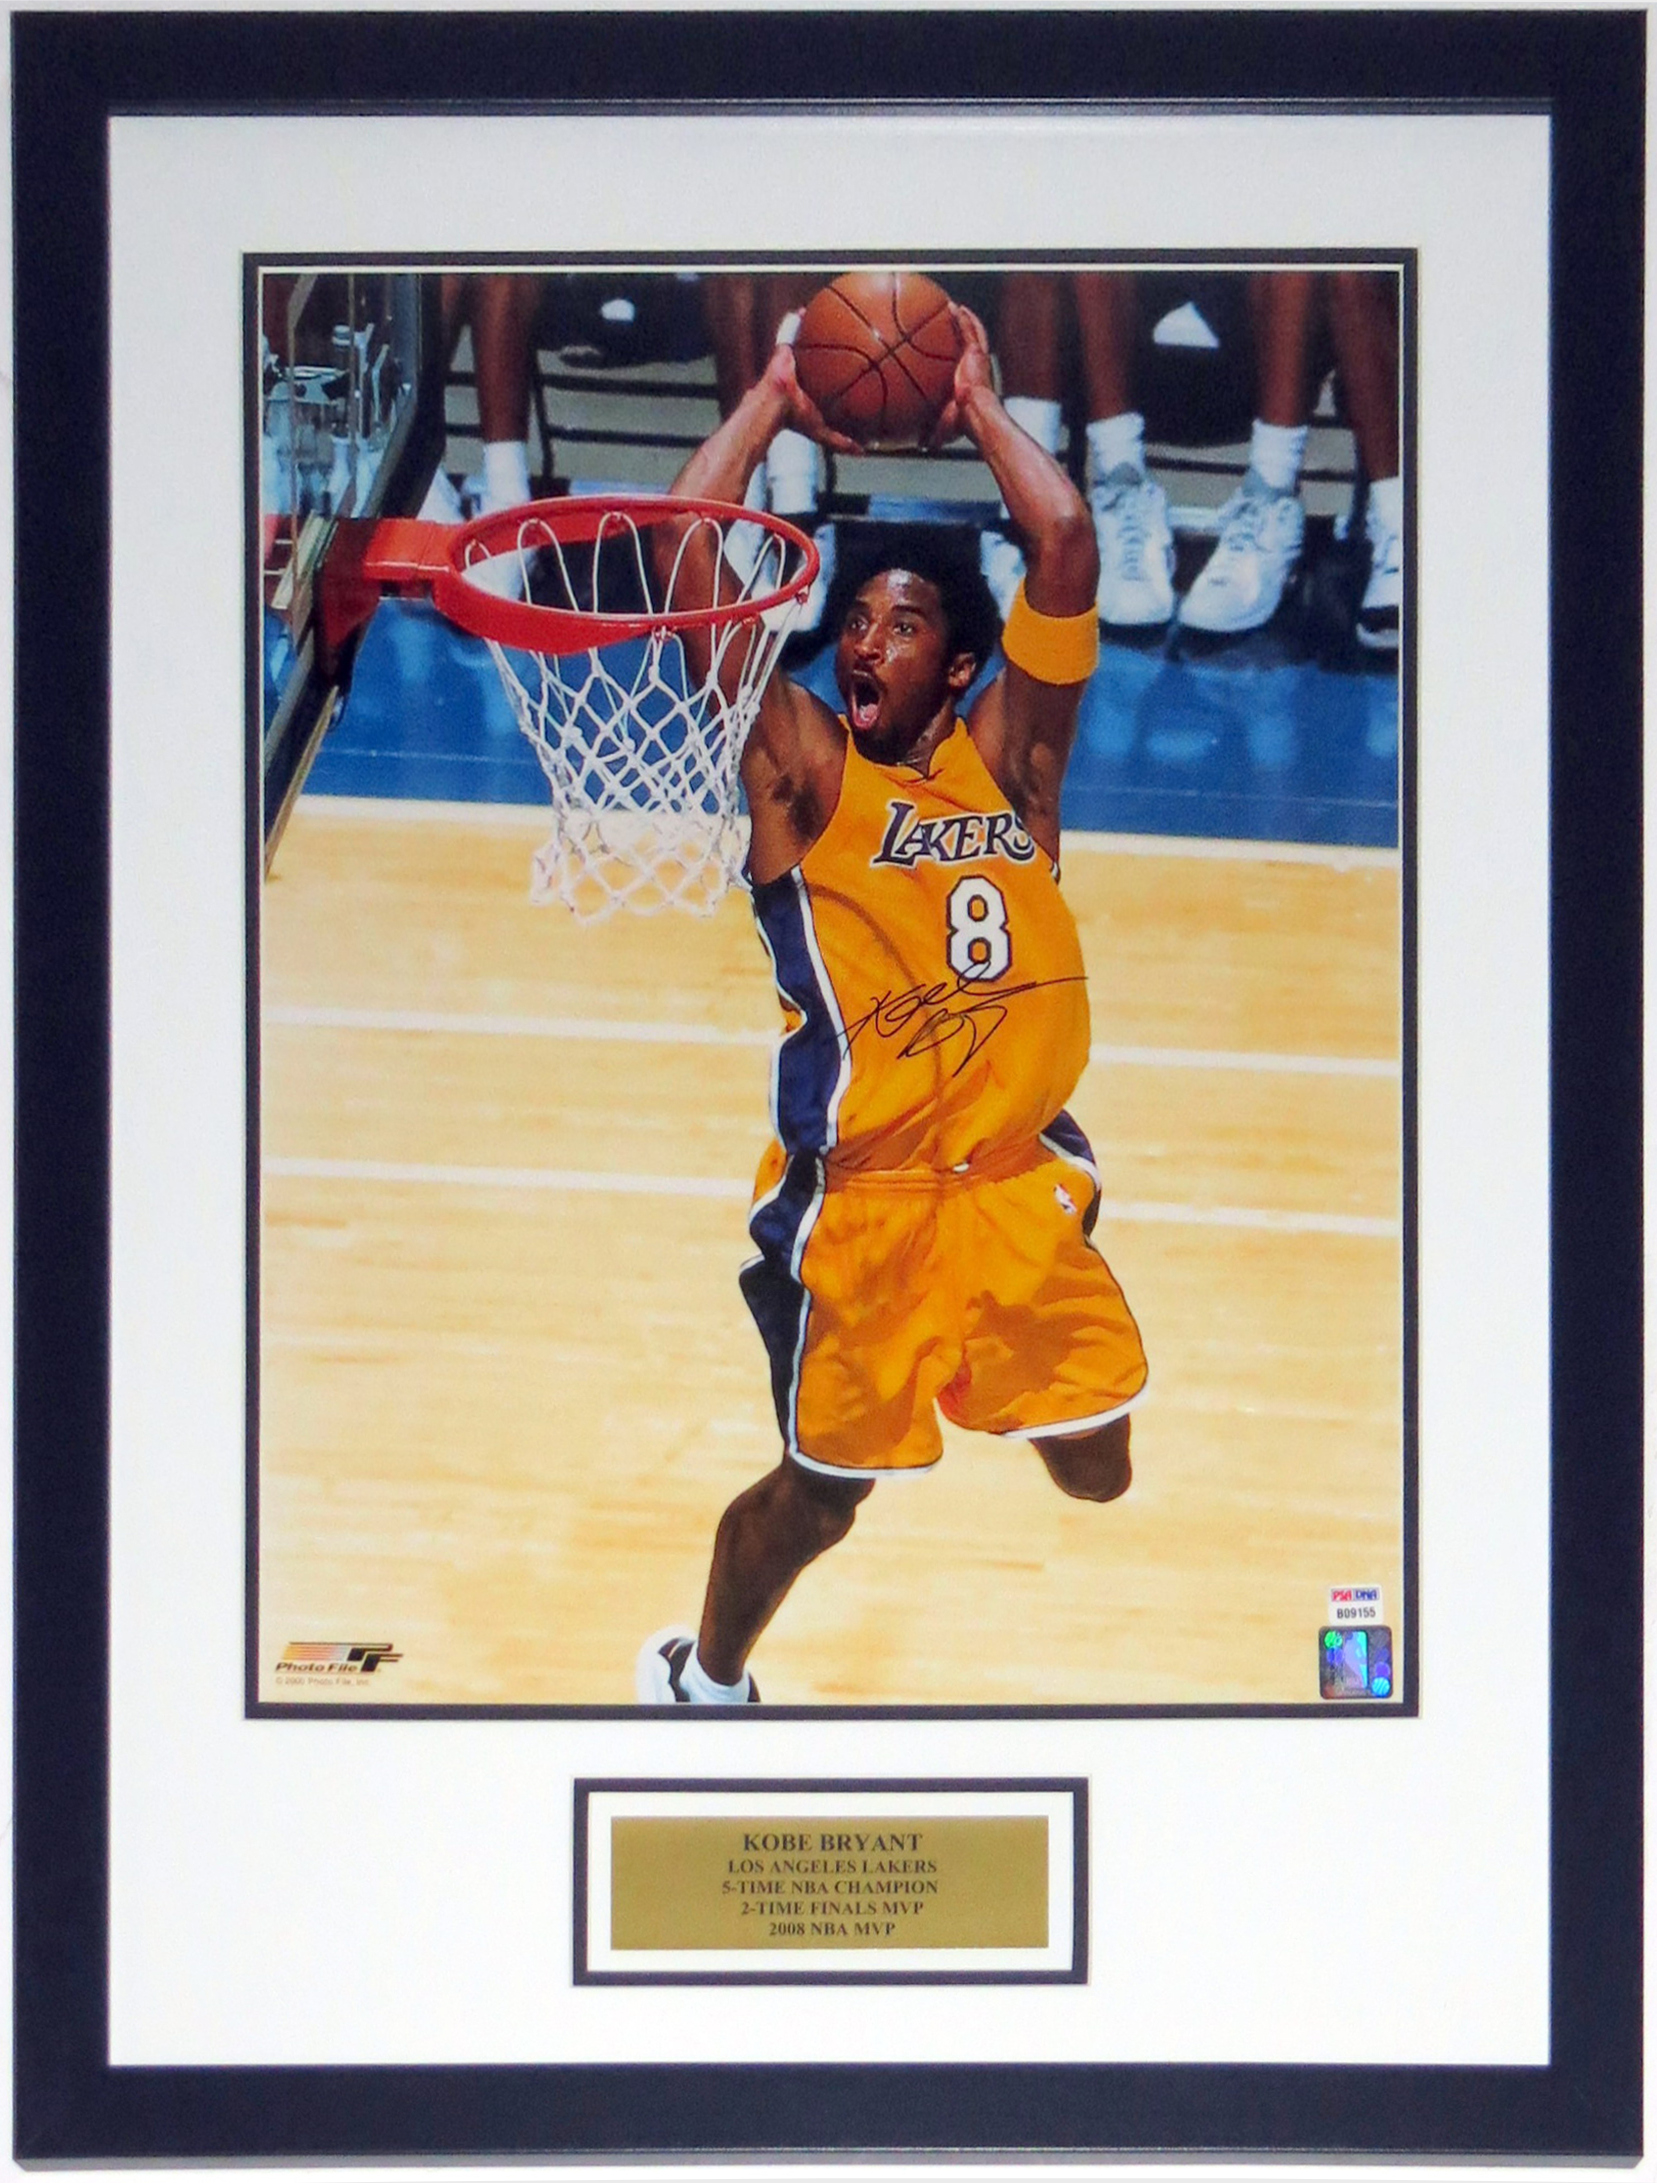 f9b79e7a23f Kobe Bryant Signed Los Angeles Lakers 16x20 Photo - PSA DNA COA  Authenticated - Custom Framed